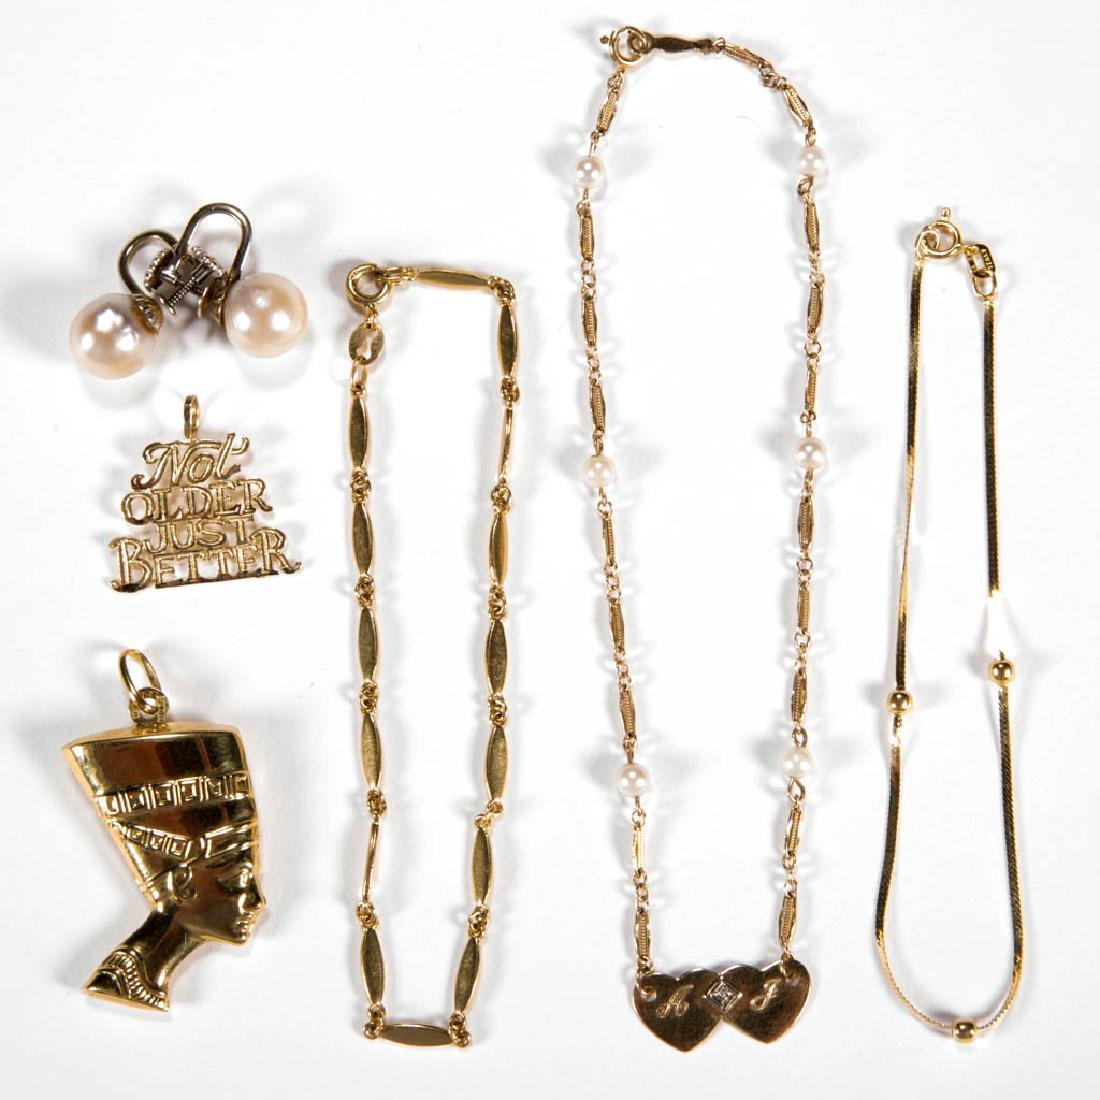 ASSORTED 18K AND 14K GOLD JEWELRY, LOT OF SEVEN PIECES